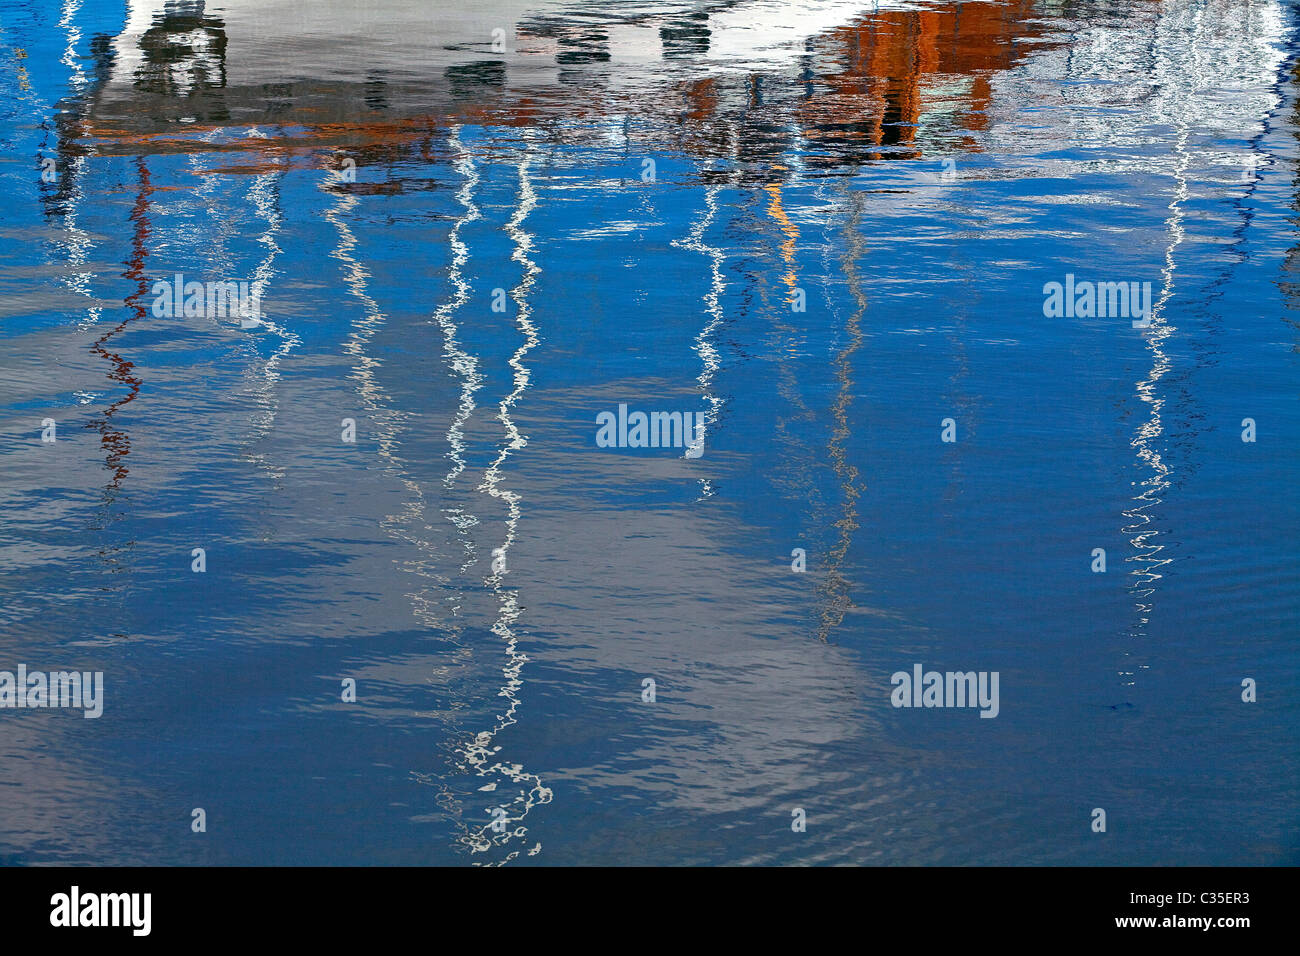 Reflections in the water. Puerto Madero, Buenos Aires, Argentina. Stock Photo